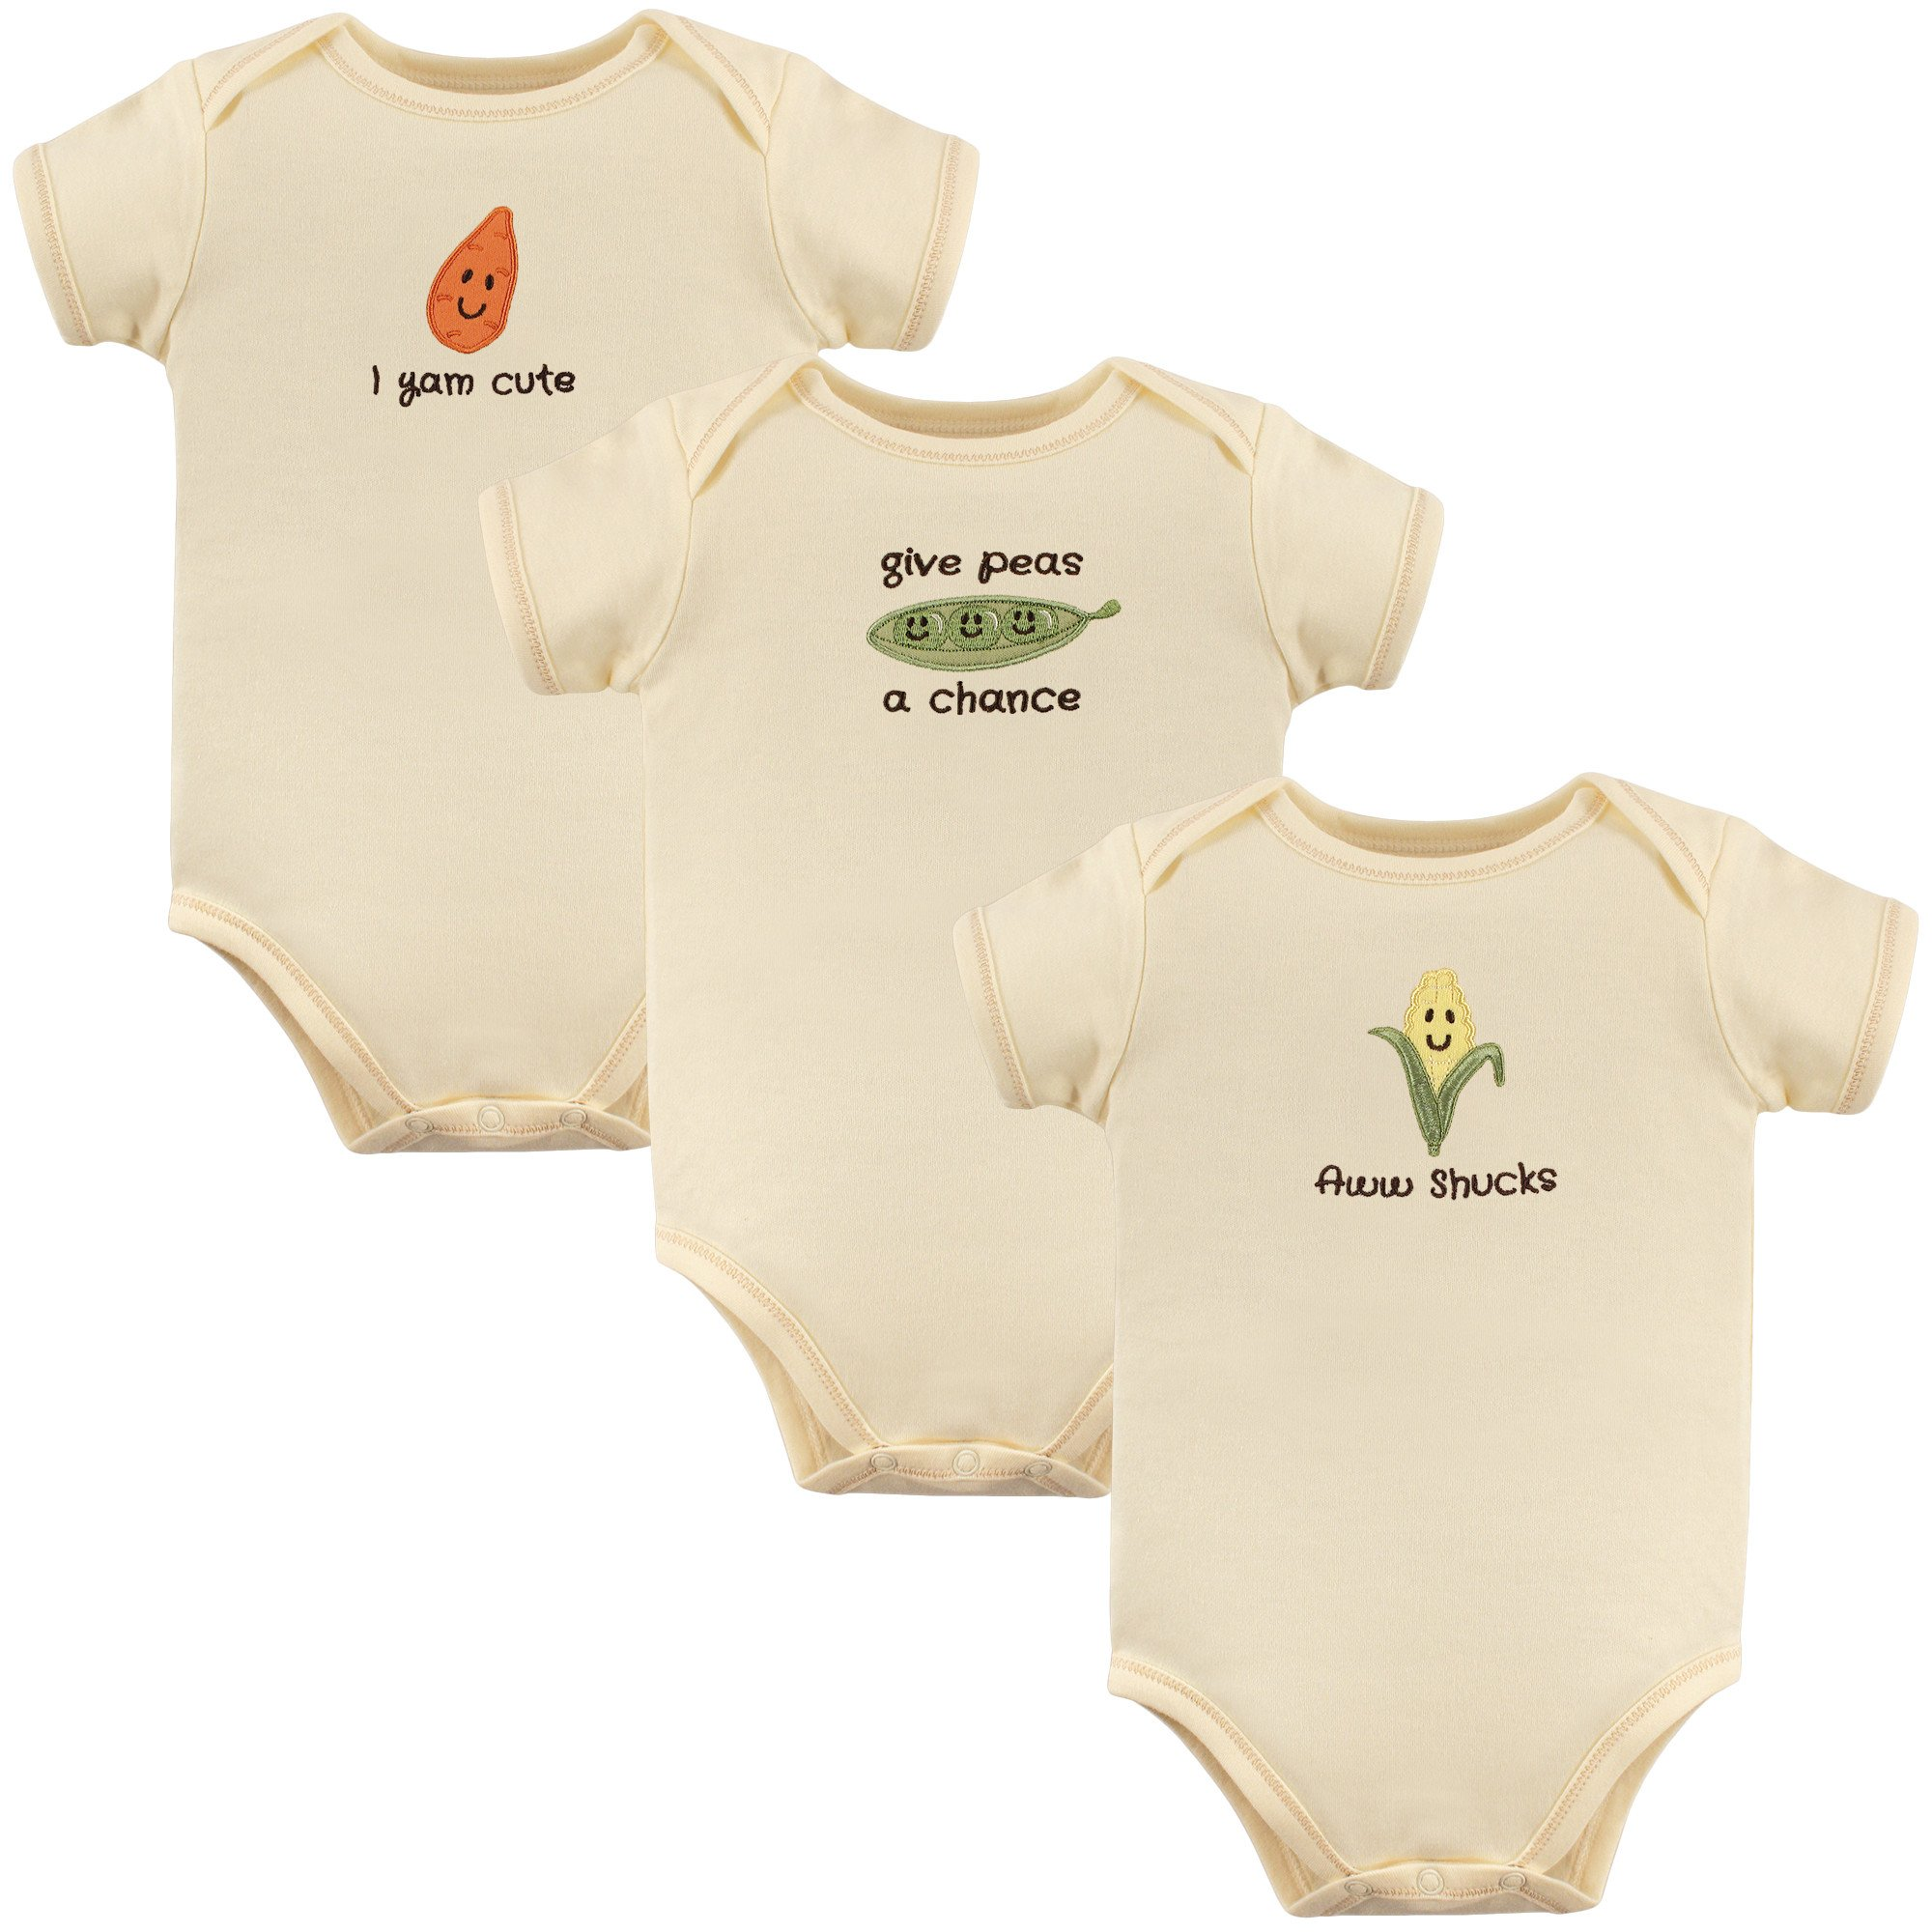 Touched by Nature Baby Organic Cotton Bodysuits, Aww Shucks 3 Pack, 6-9 Months (9M)